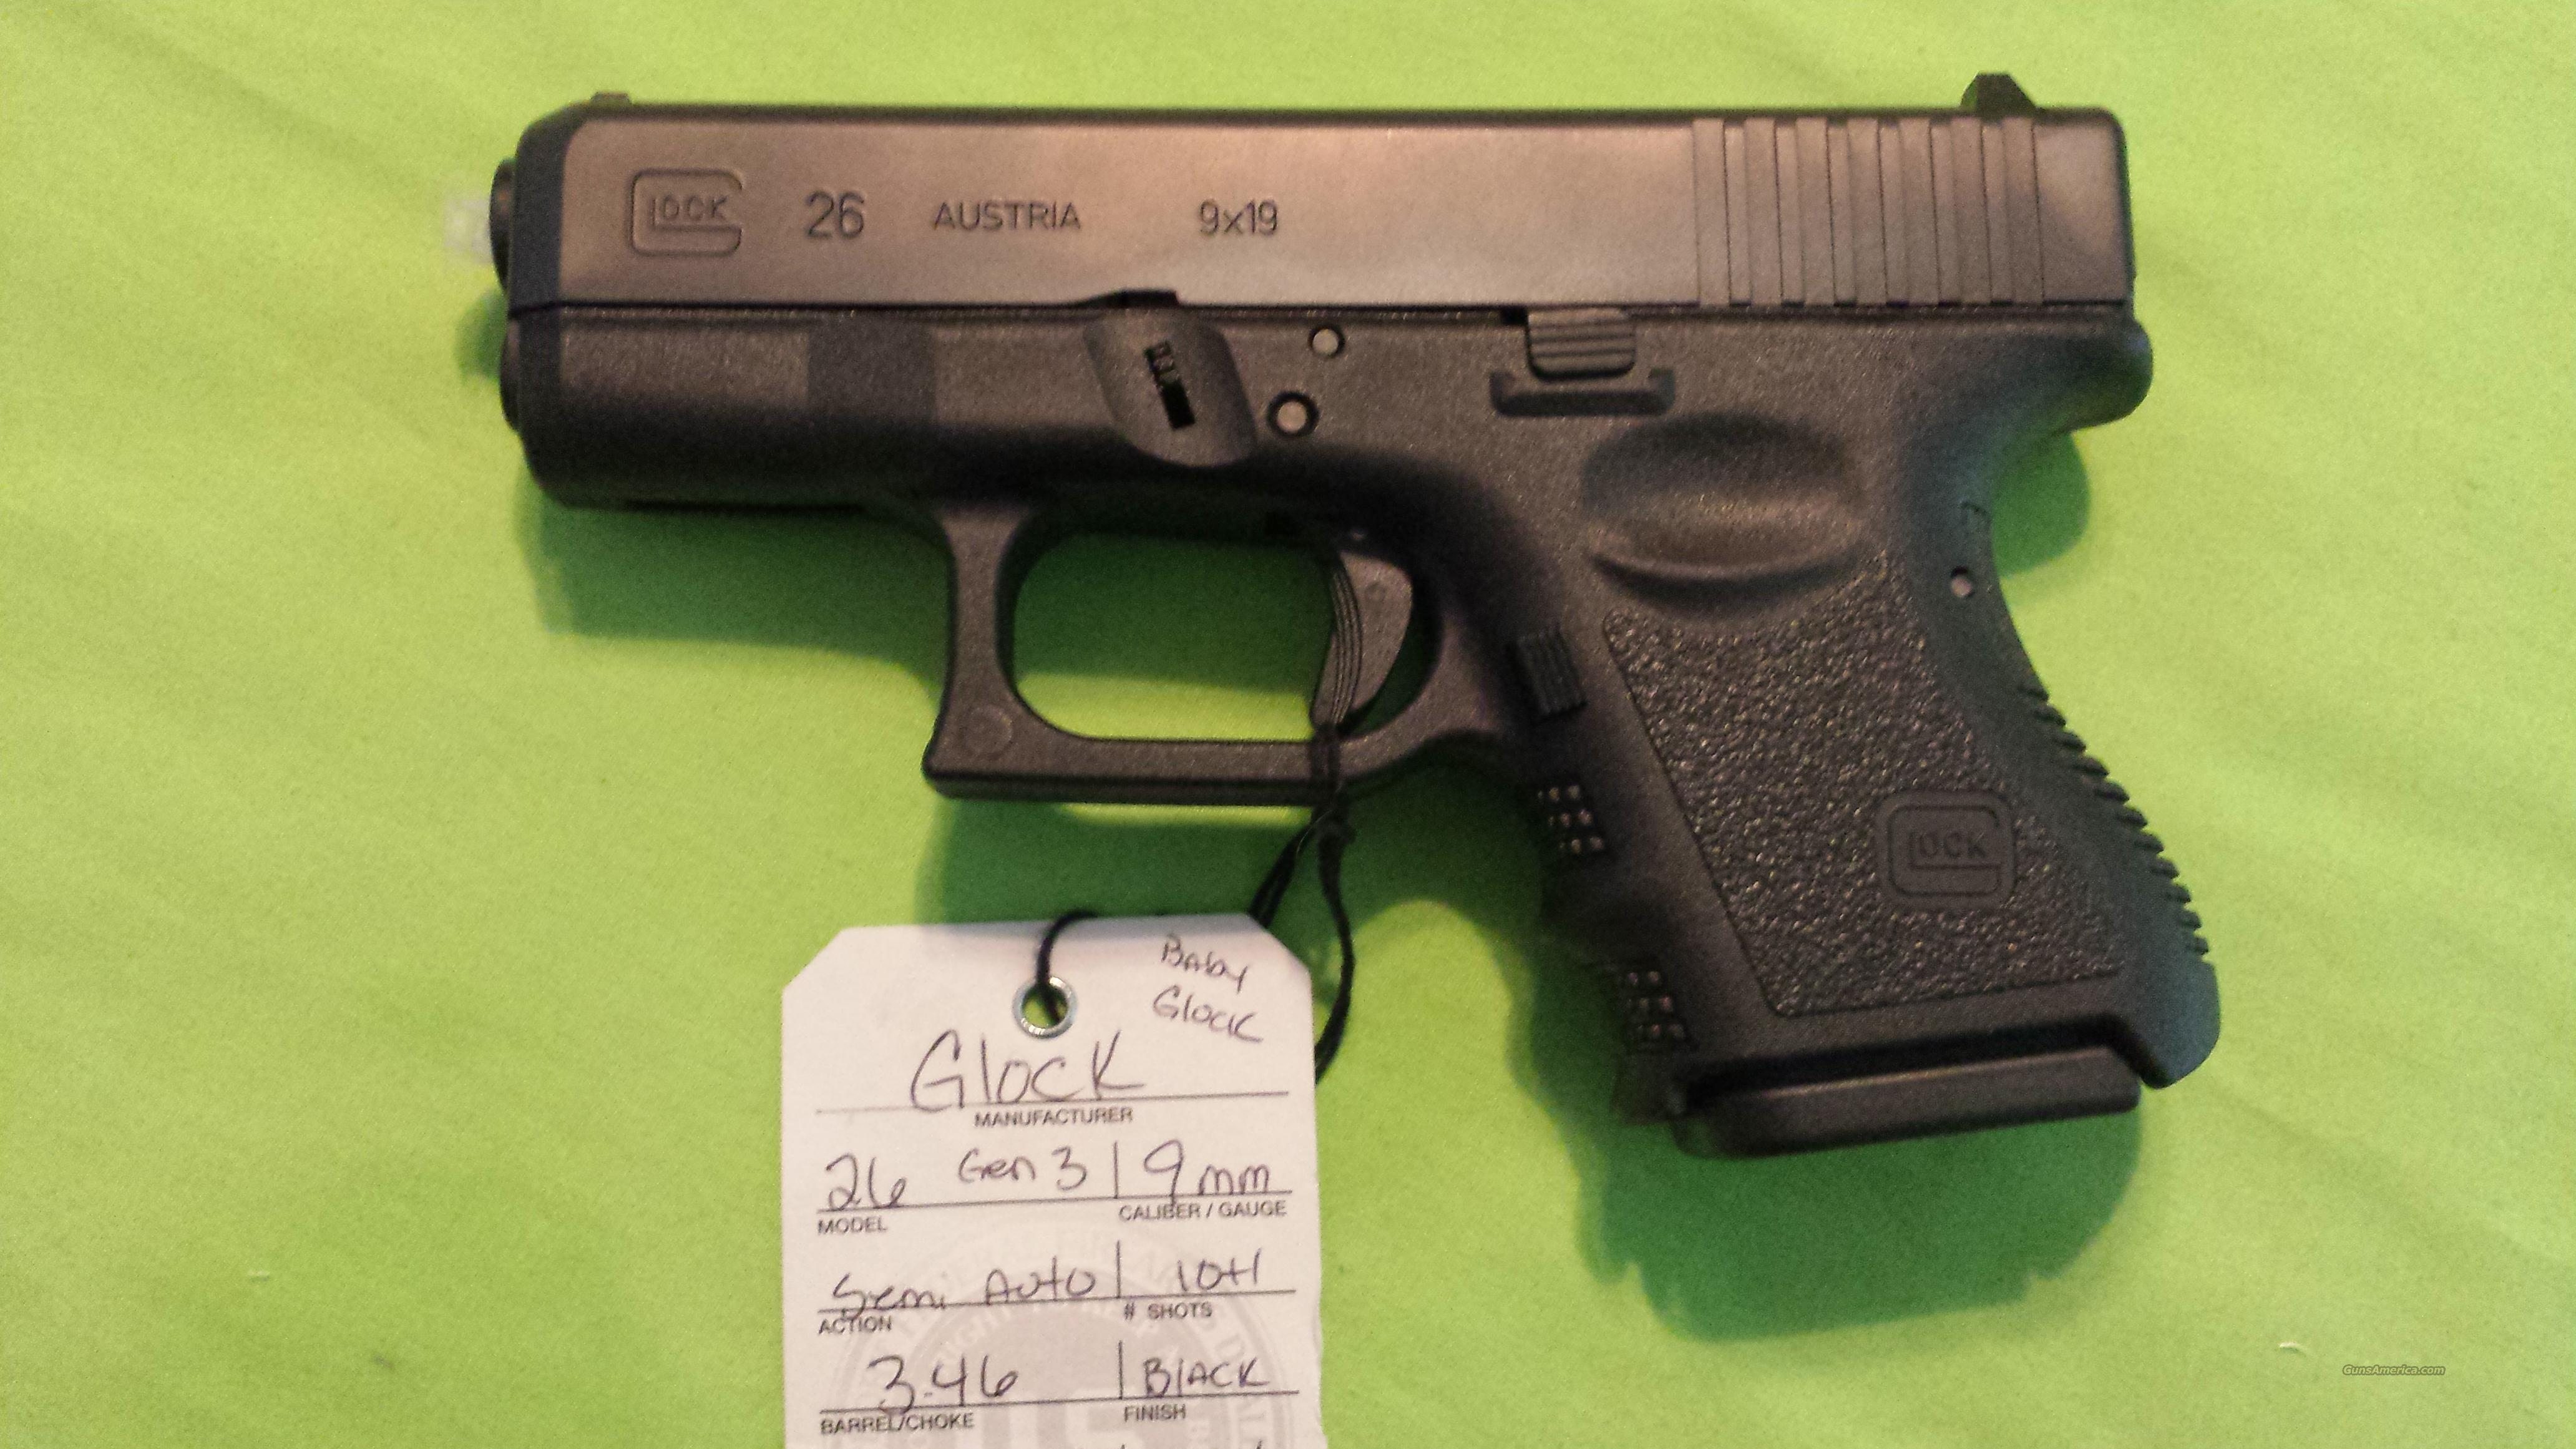 Glock 26 Quot Baby Glock Quot 9mm Subcompact Black 10 1 For Sale